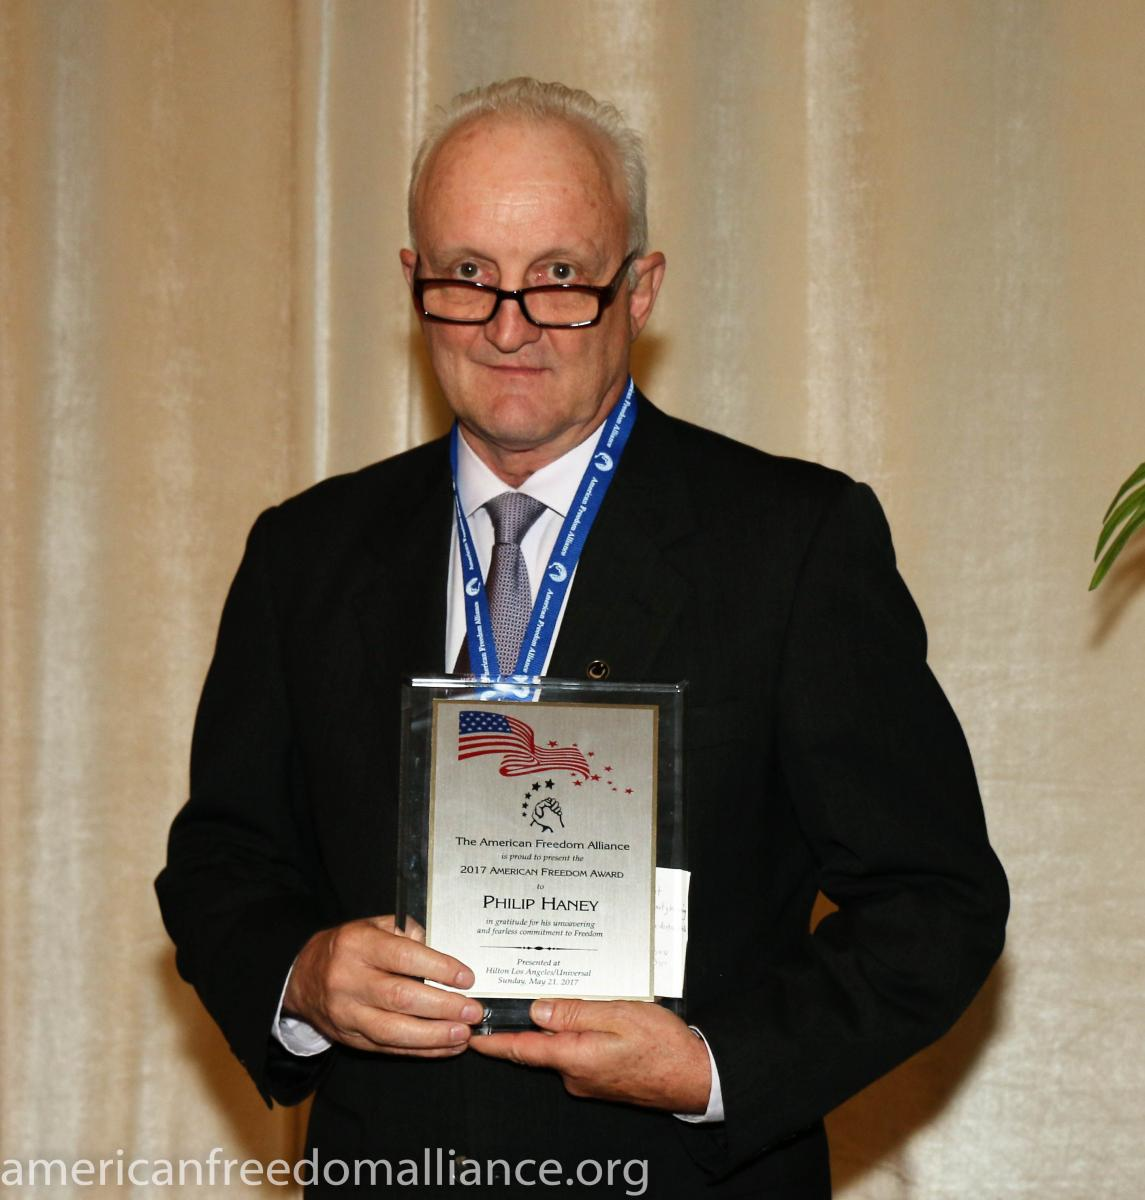 phil_haney_with_award